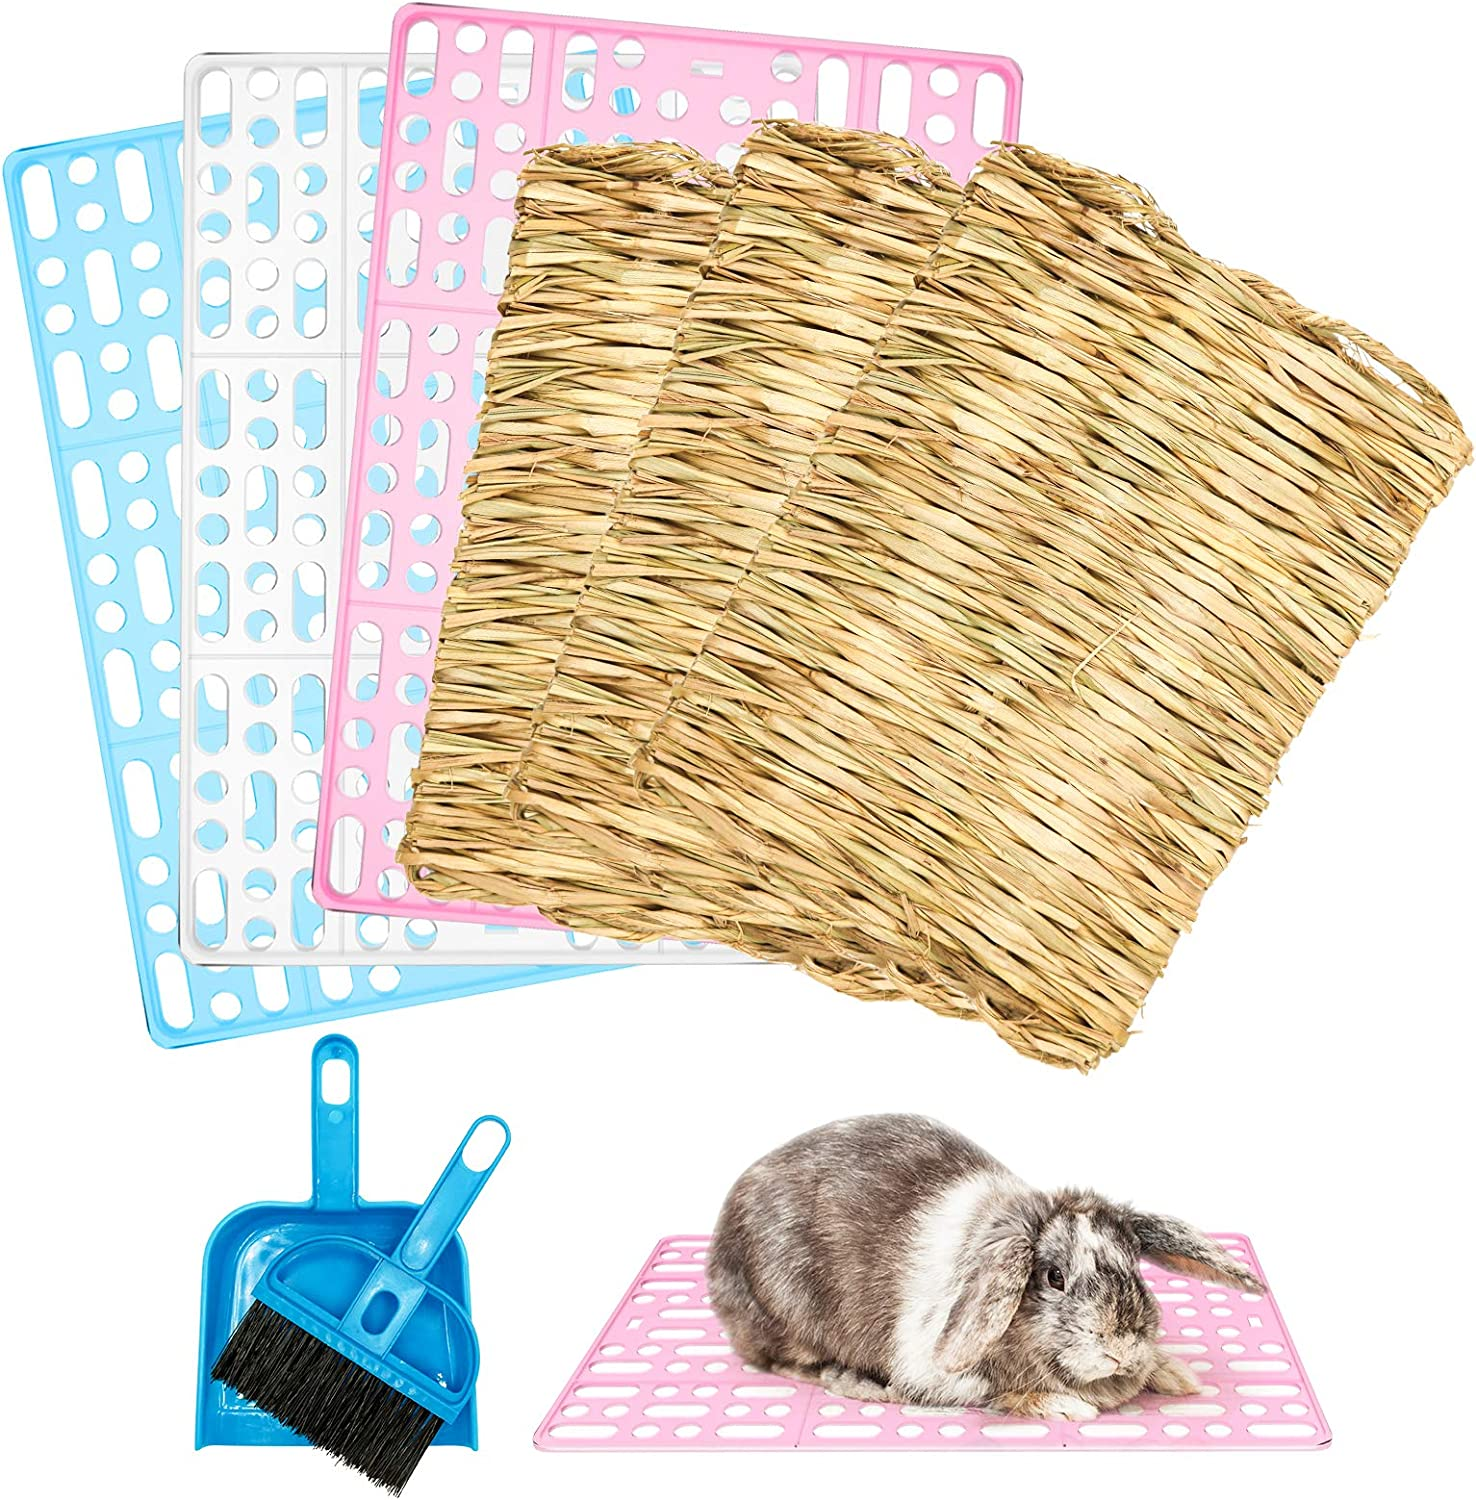 Roundler Bunny Cage Mats, 3 Pieces Rabbit Plastic Floor Pads and 3 Pieces Grass Woven Bed Mats Small Animal Feet Pads Bed Nest Mats for Bunny Hamster Rat Chinchilla Guinea Pig Cats Dogs